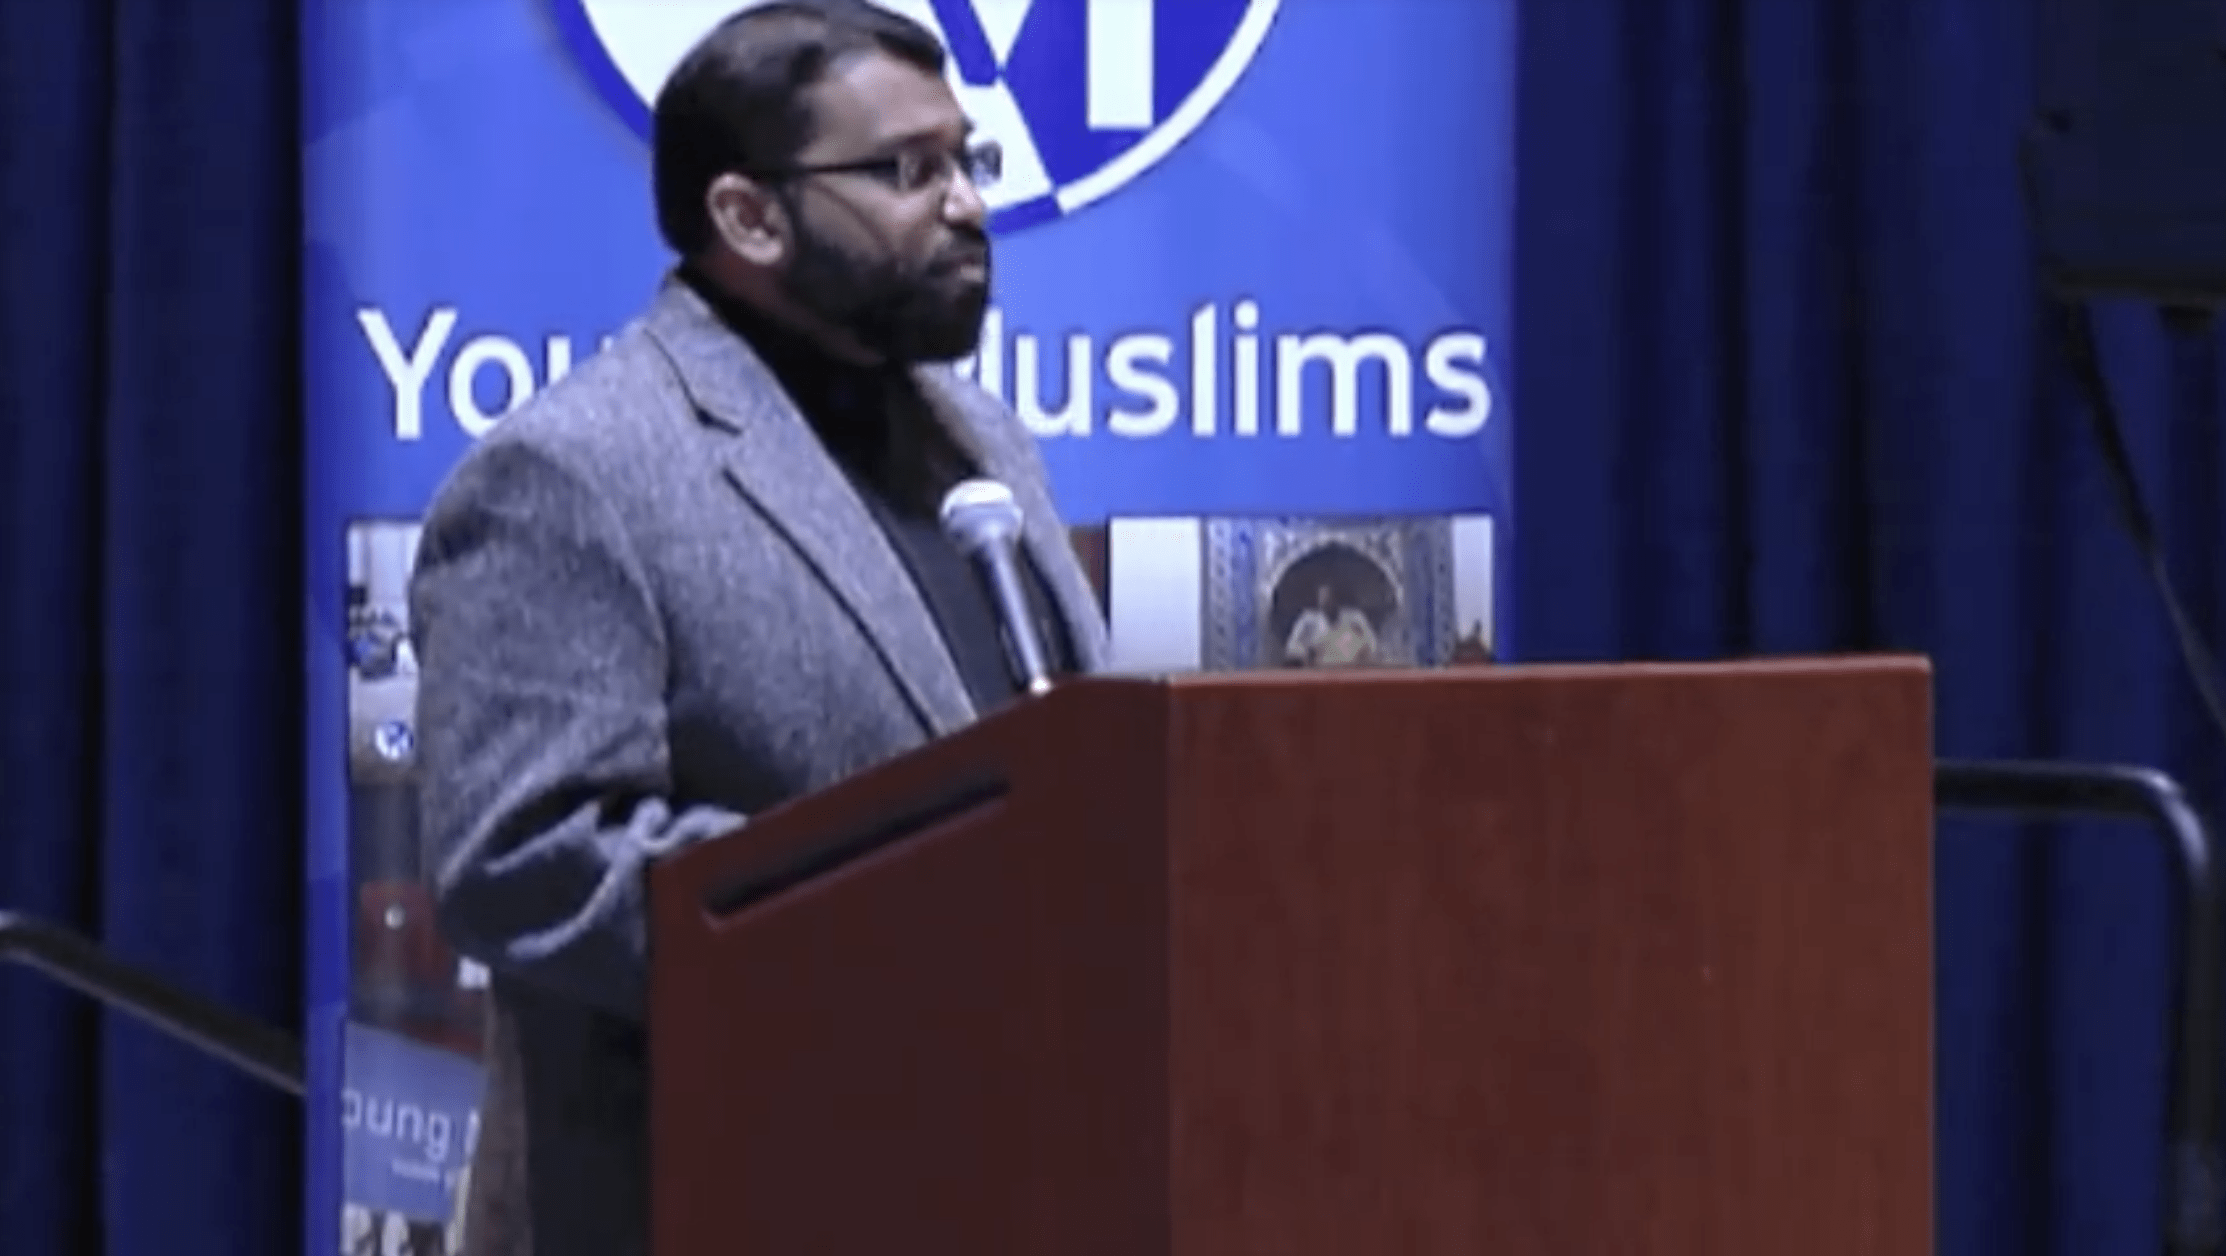 Yasir Qadhi – What's Holding Me Back? I Don't Feel Like It